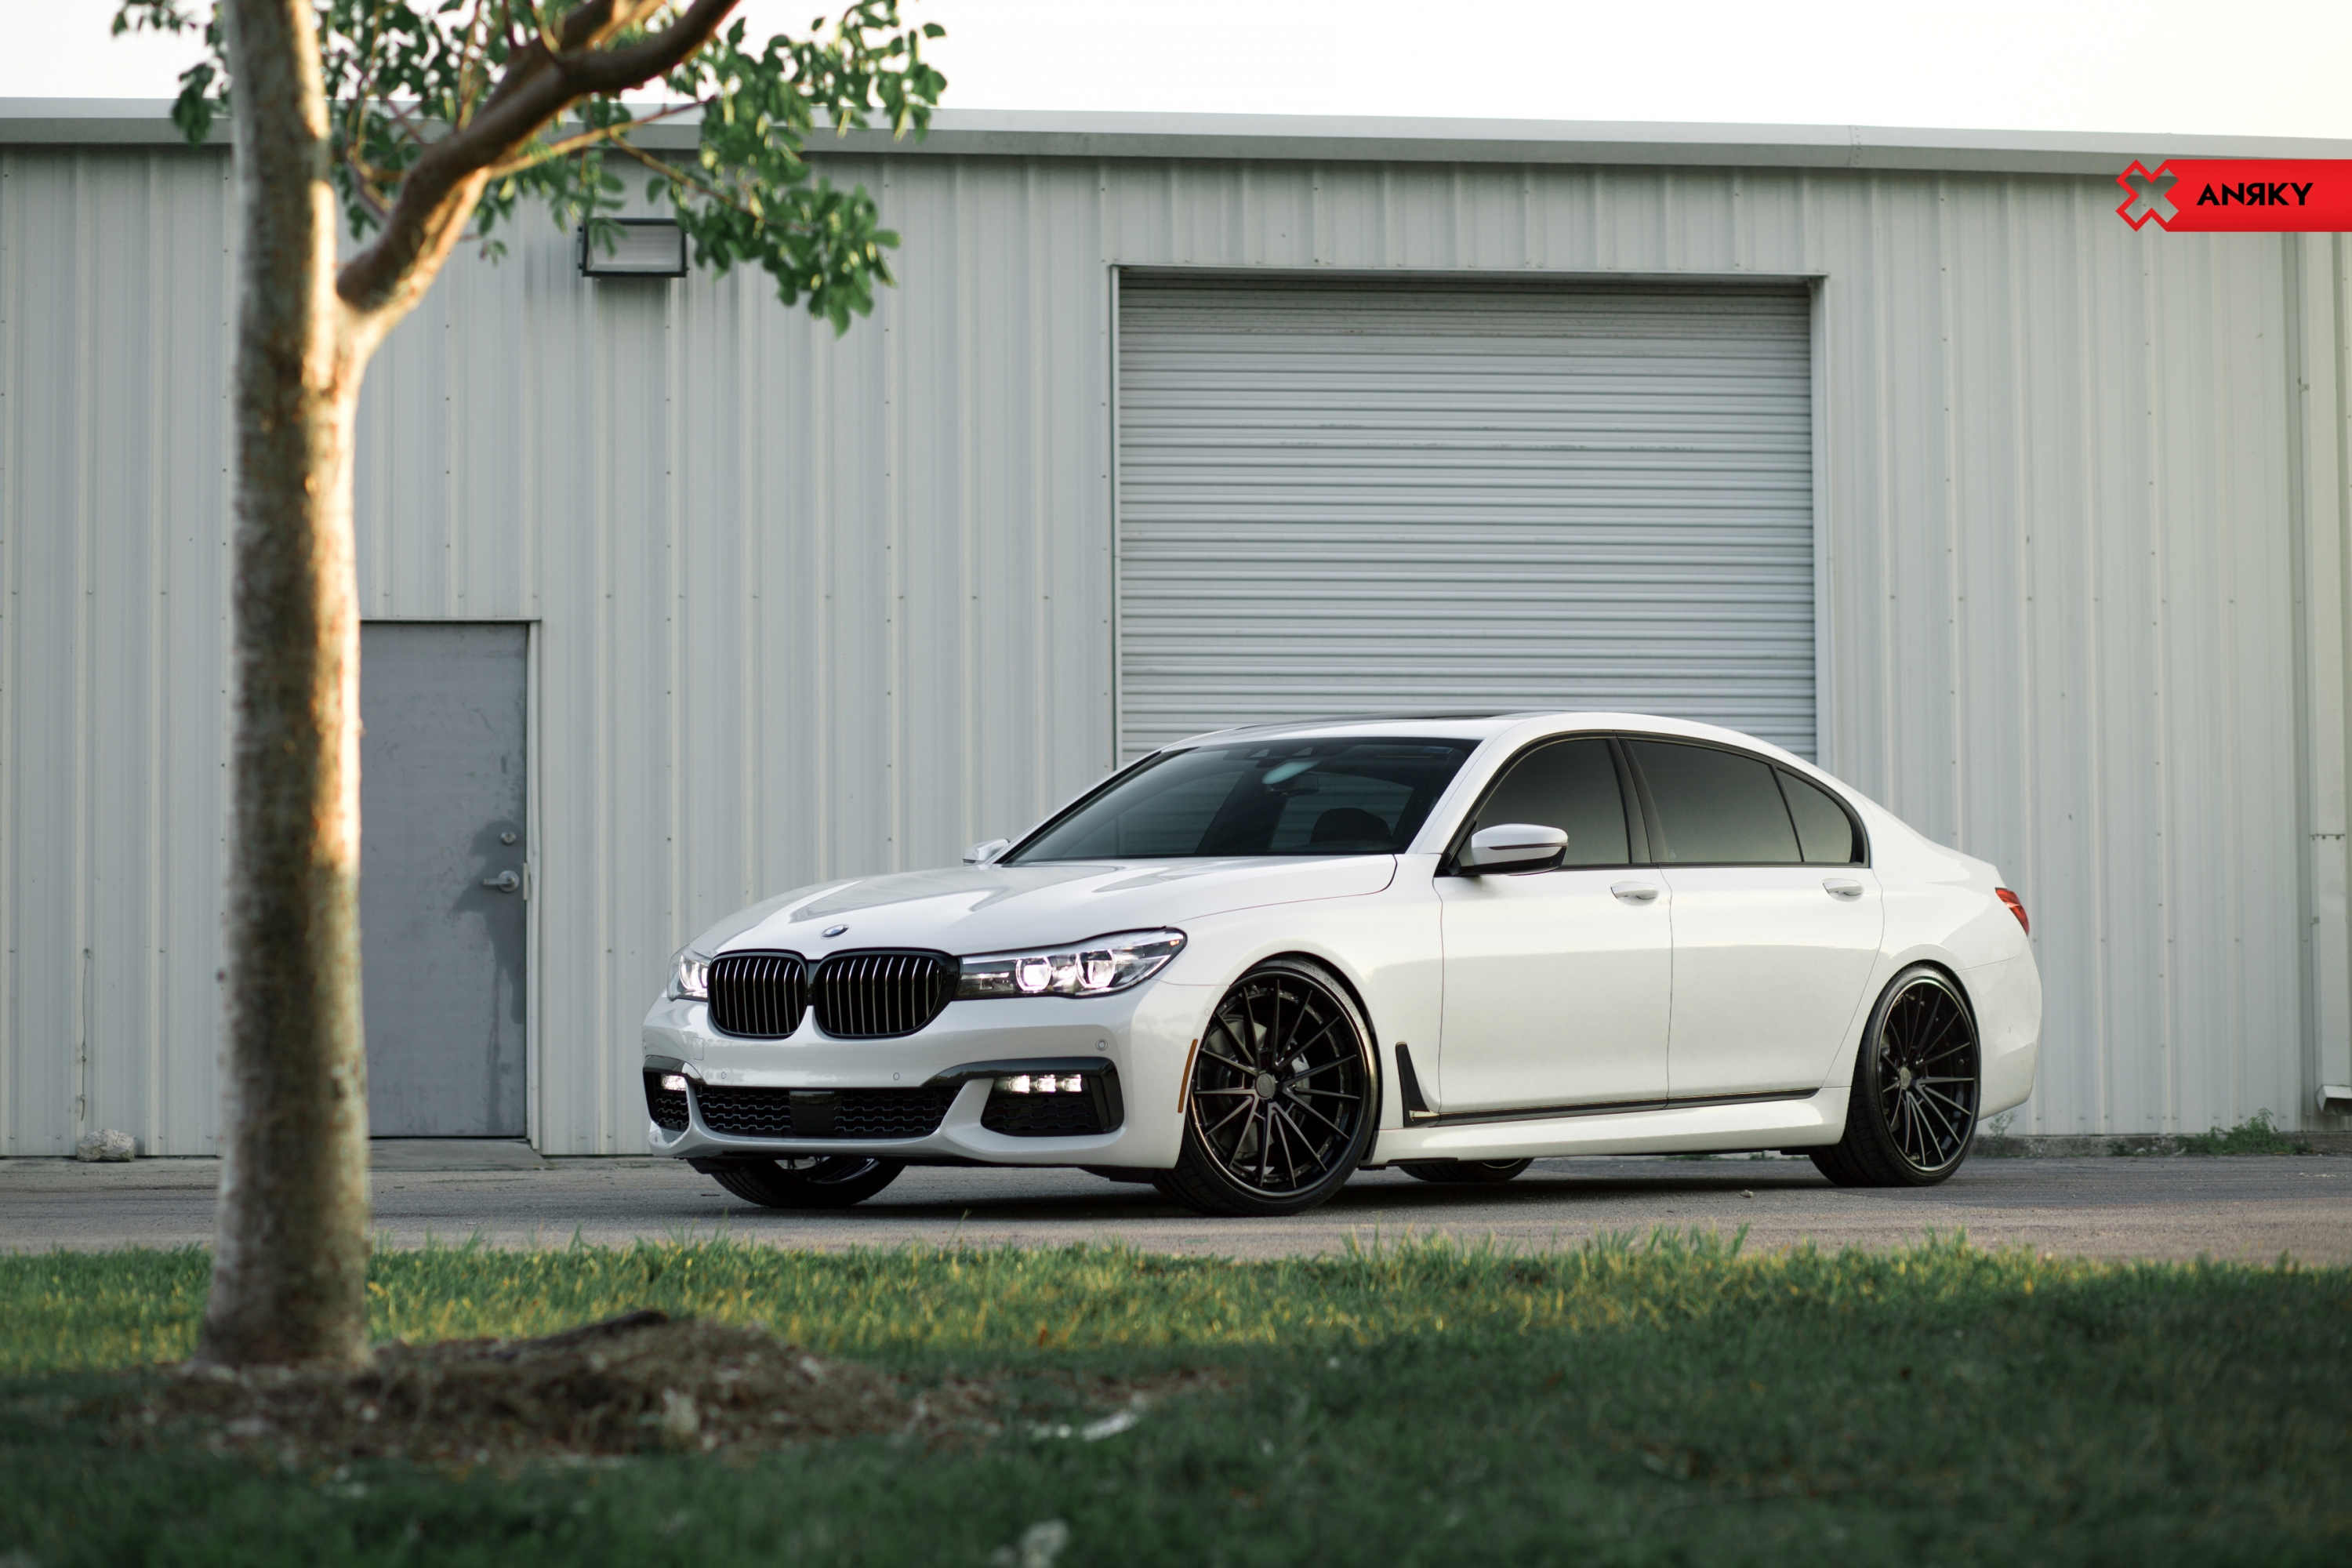 BMW 7 Series x ANRKY AN39 Wheels